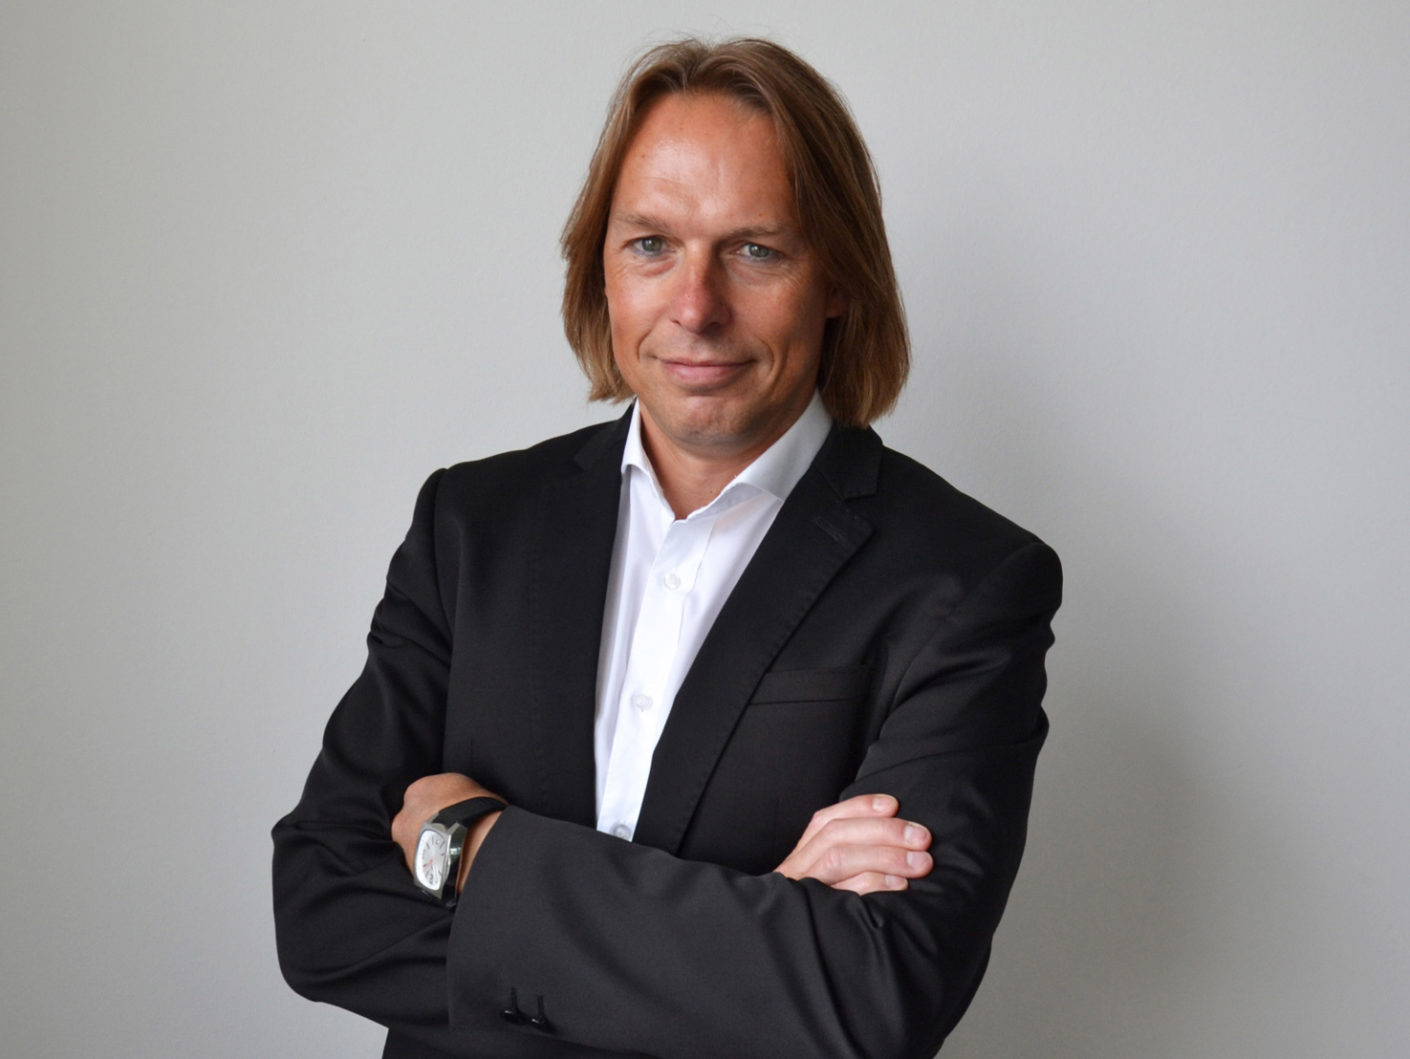 Hans-Jörg Müller, Head of Product and Design at Gira.